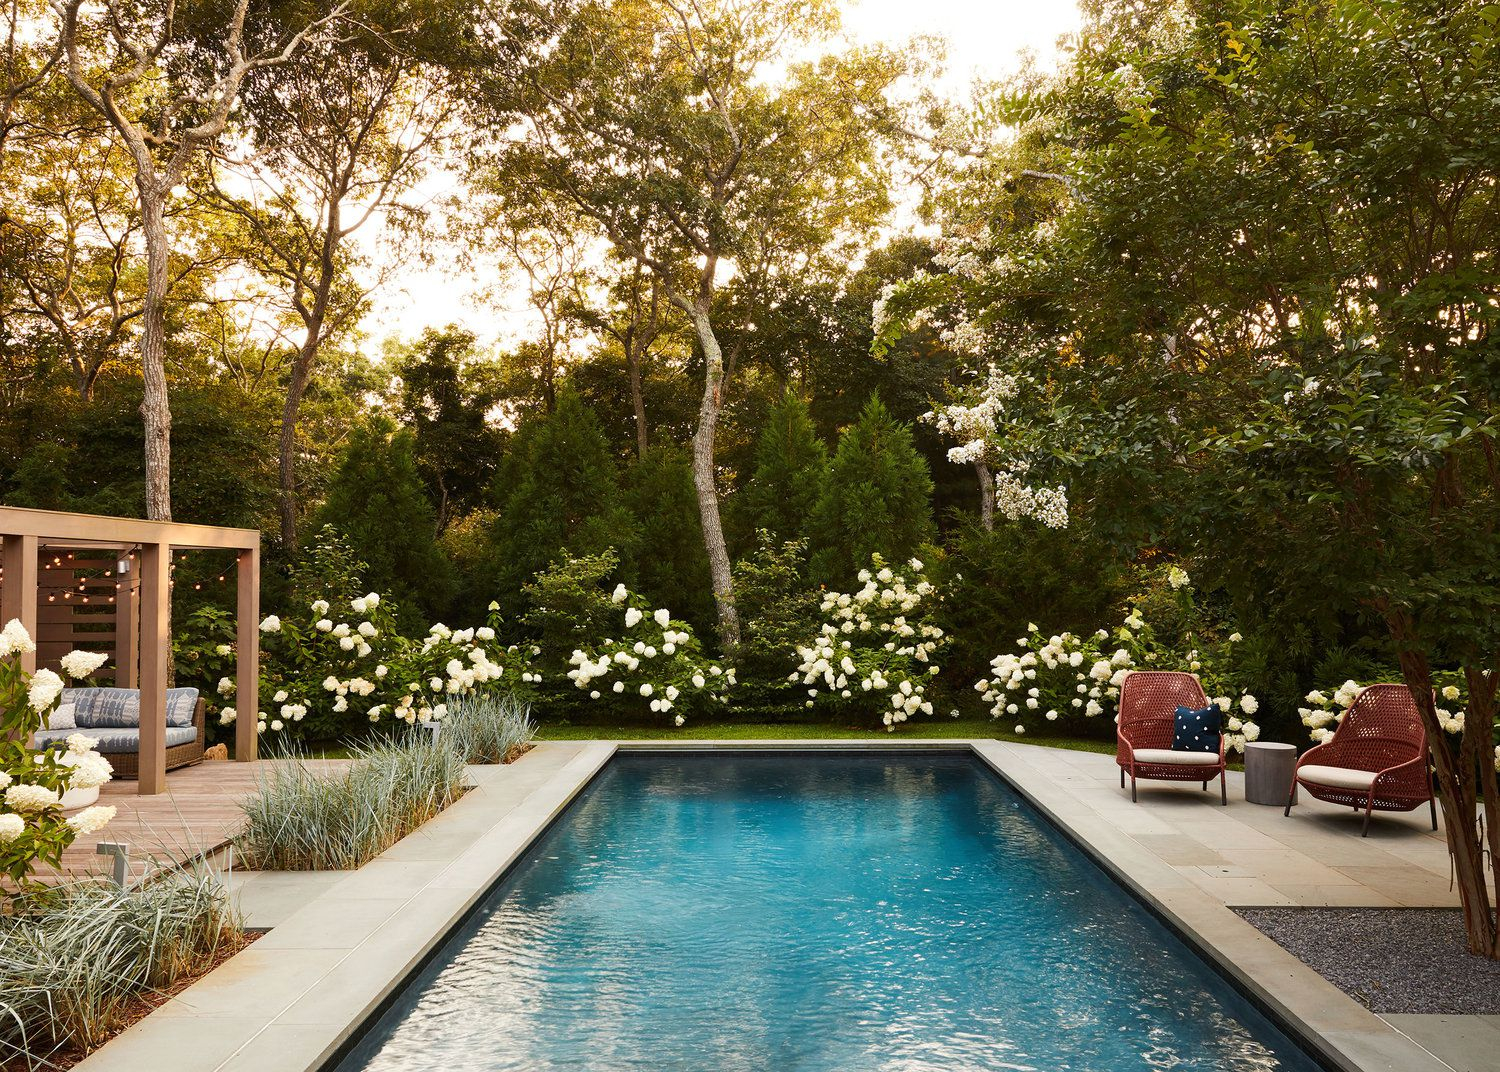 37 Breathtaking Backyard Ideas Outdoor Space Design Inspiration intended for 10 Some of the Coolest Initiatives of How to Upgrade Big Backyard Ideas